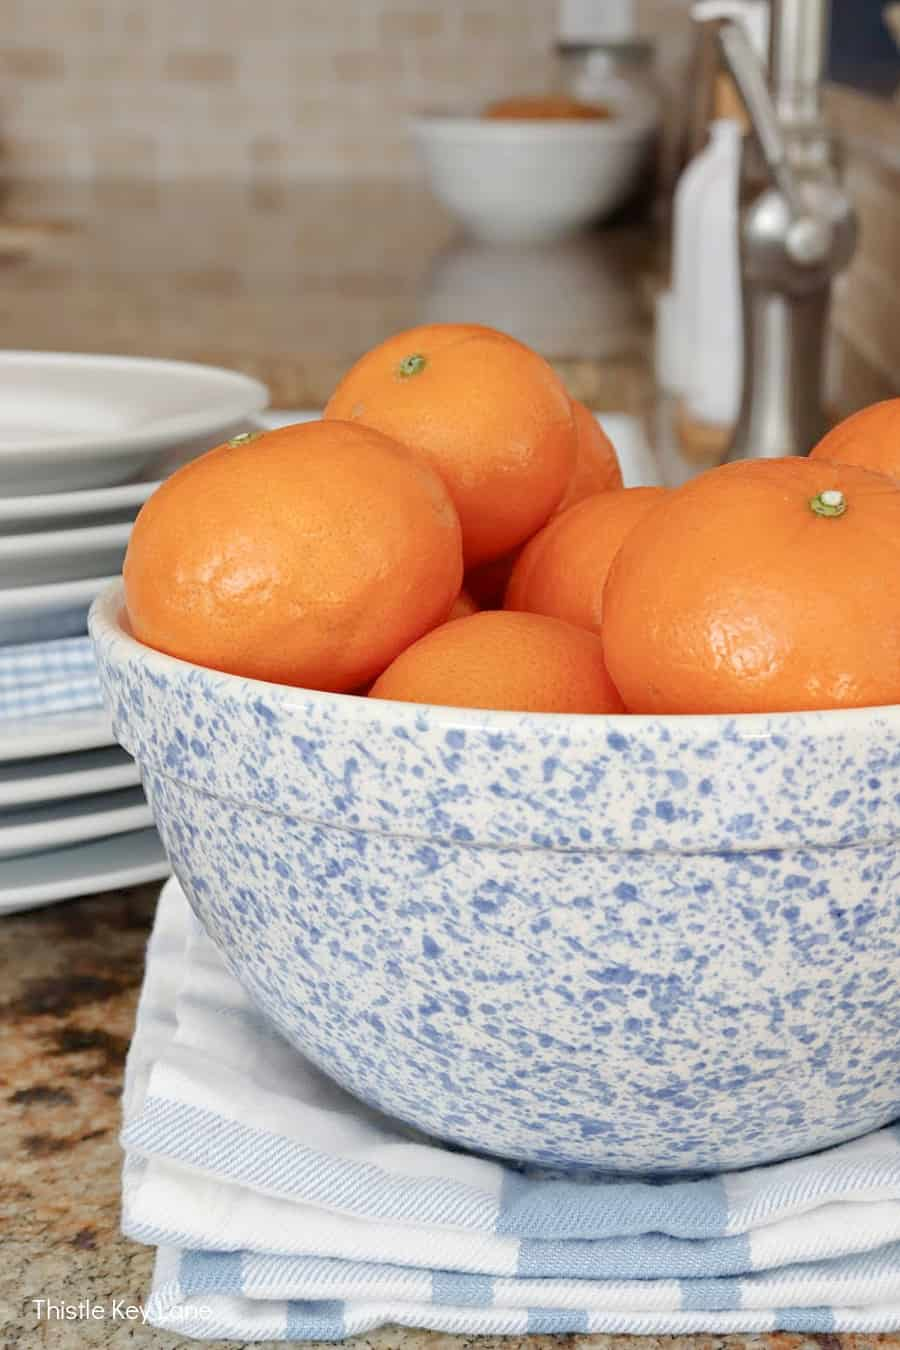 Blue and white speckled bowl holding oranges - Using Trays To Control Kitchen Clutter.